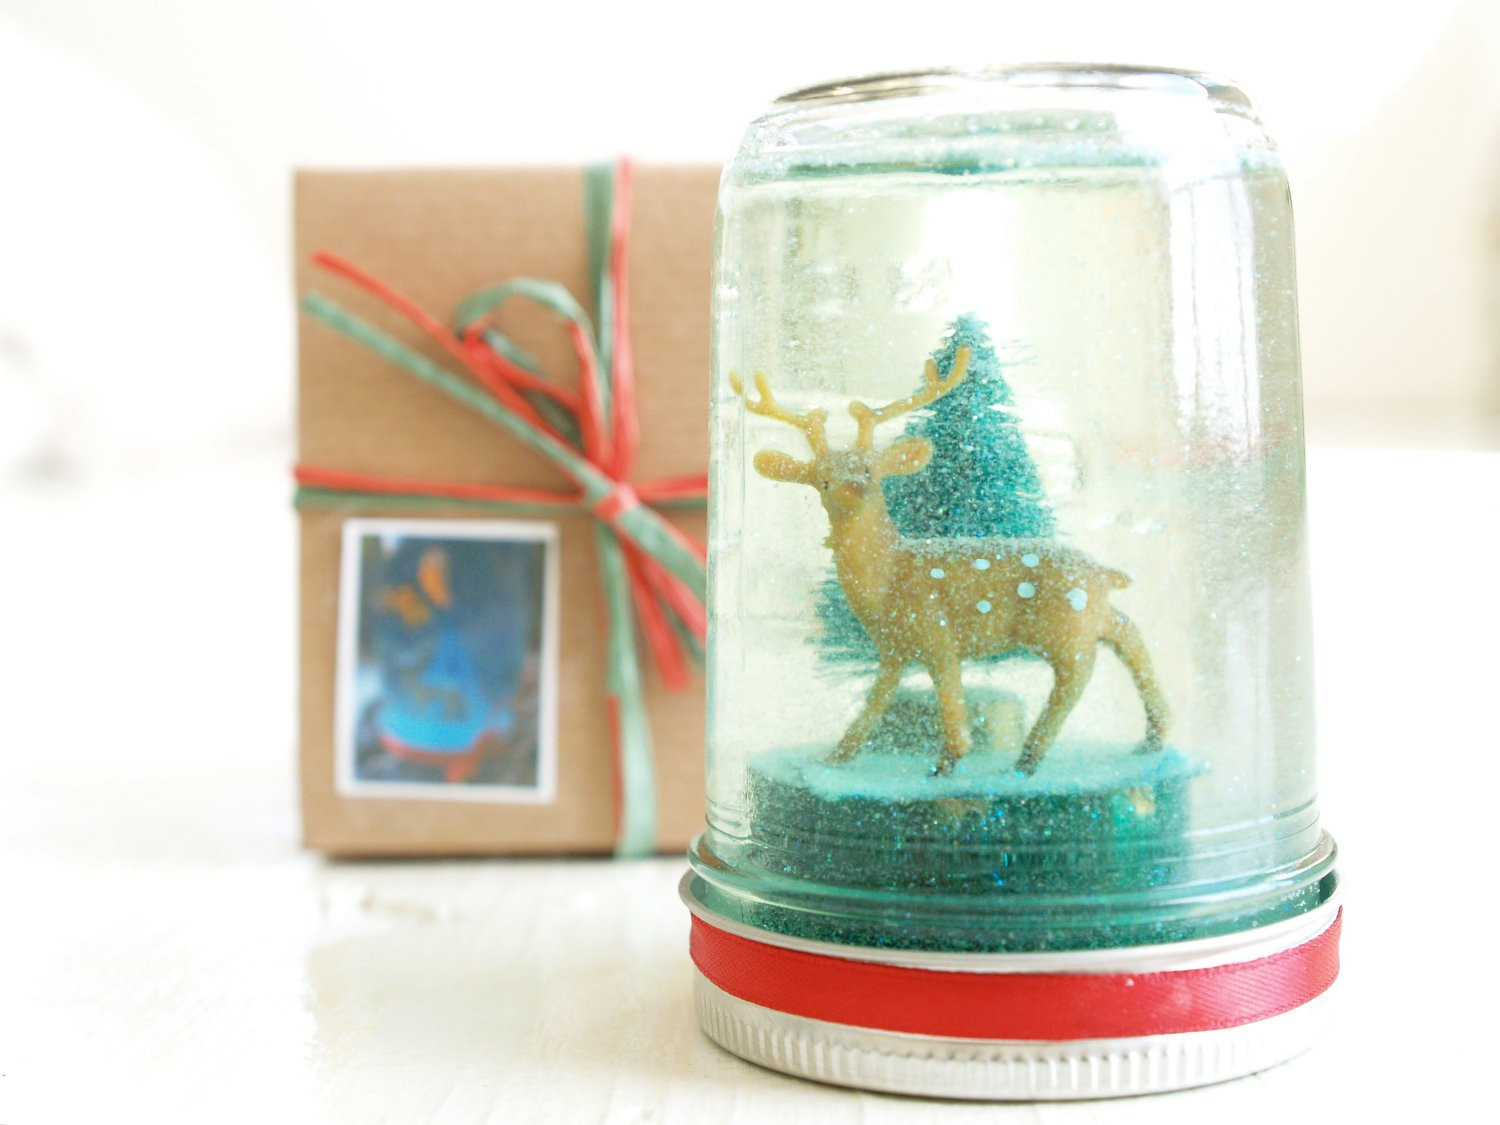 Best ideas about DIY Snowglobe Kit . Save or Pin DIY Snow Globe Kit Christmas Winter Wonderland for Children Now.